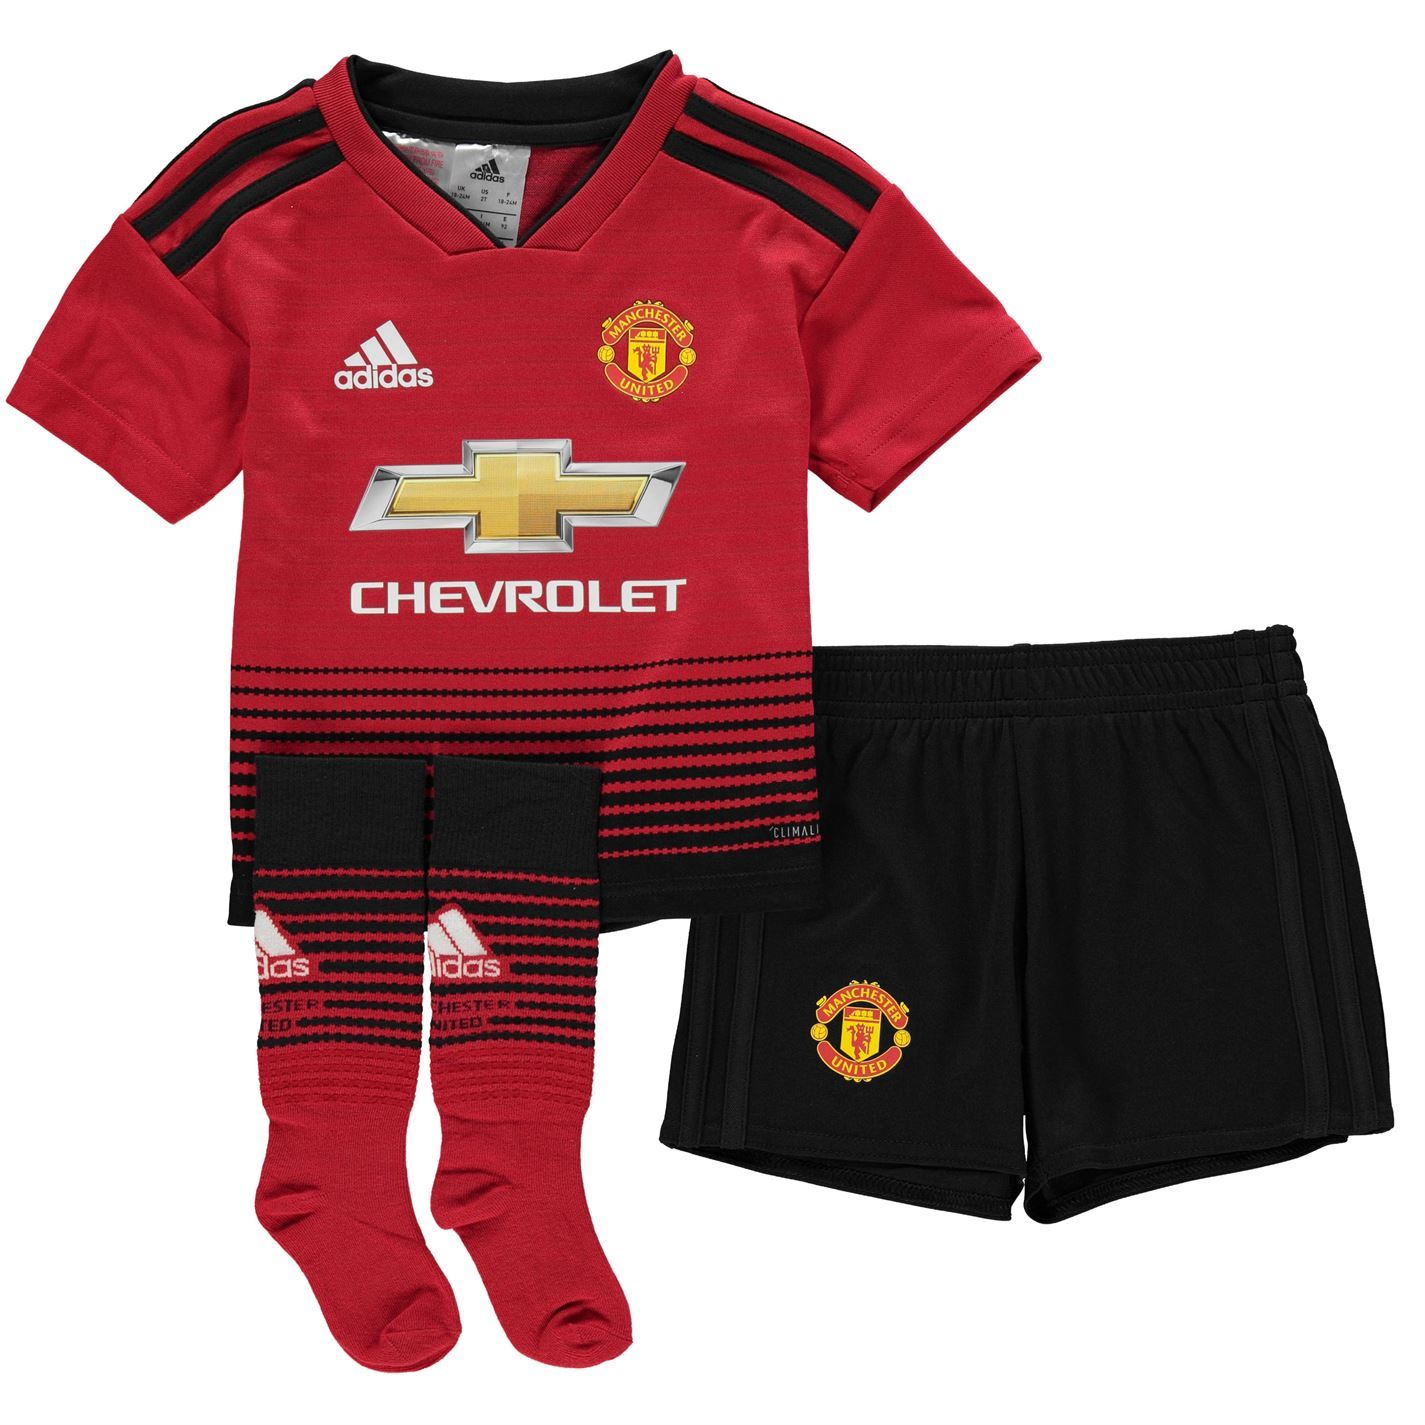 cc07adf7604 adidas Manchester United Home Mini Kit 2018 19 Infants Red Football Soccer  Strip